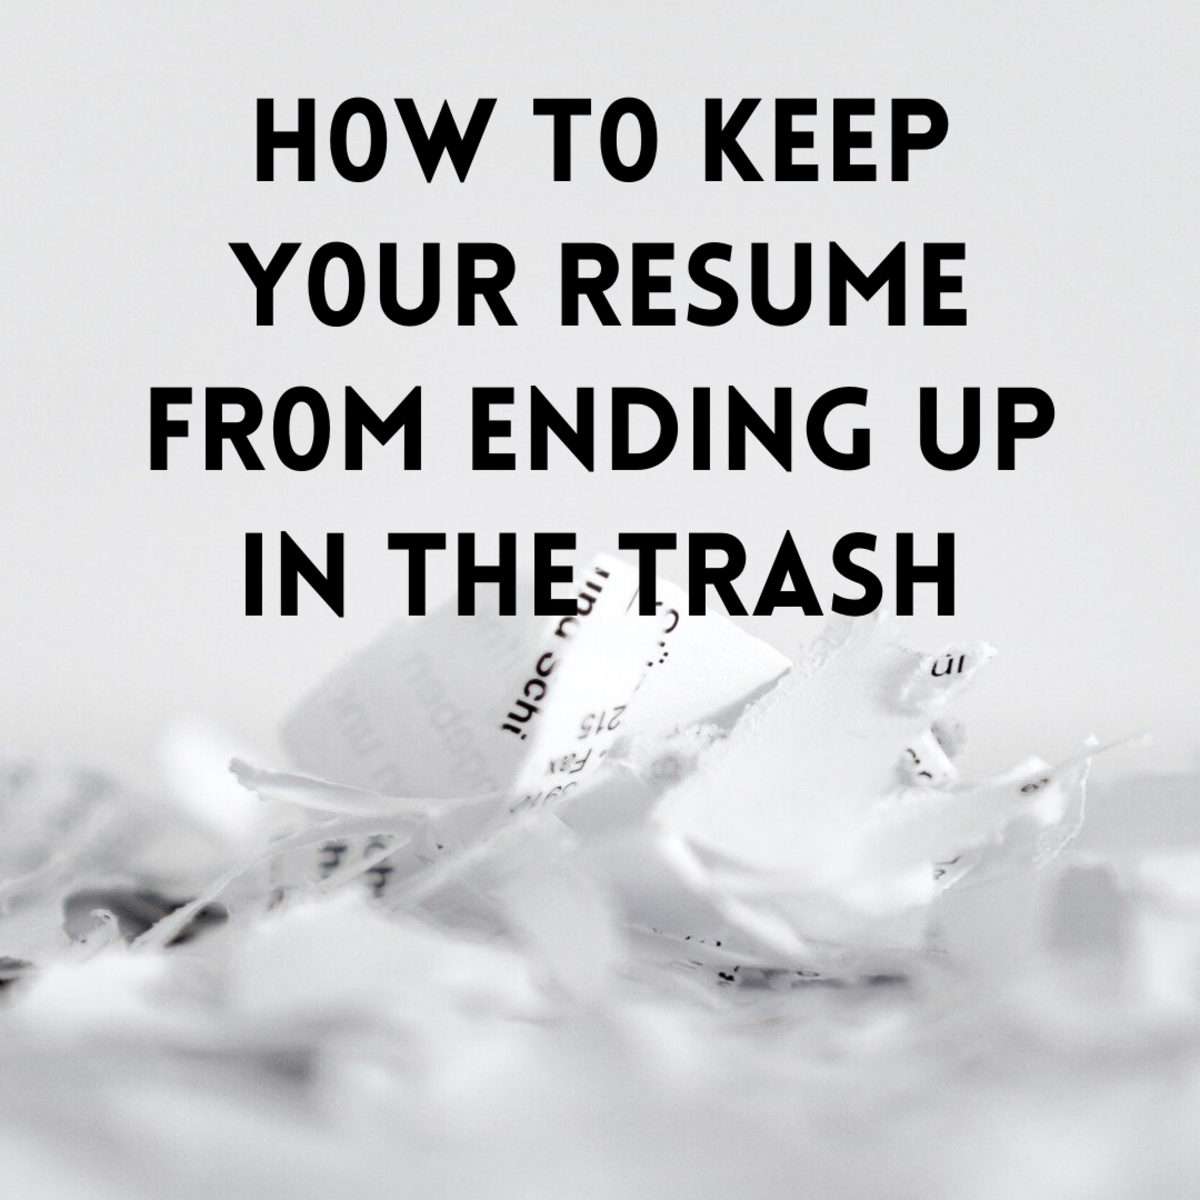 Most people are sending out generic resumes that fail to show their strengths. Such resumes are deleted or trashed almost immediately.